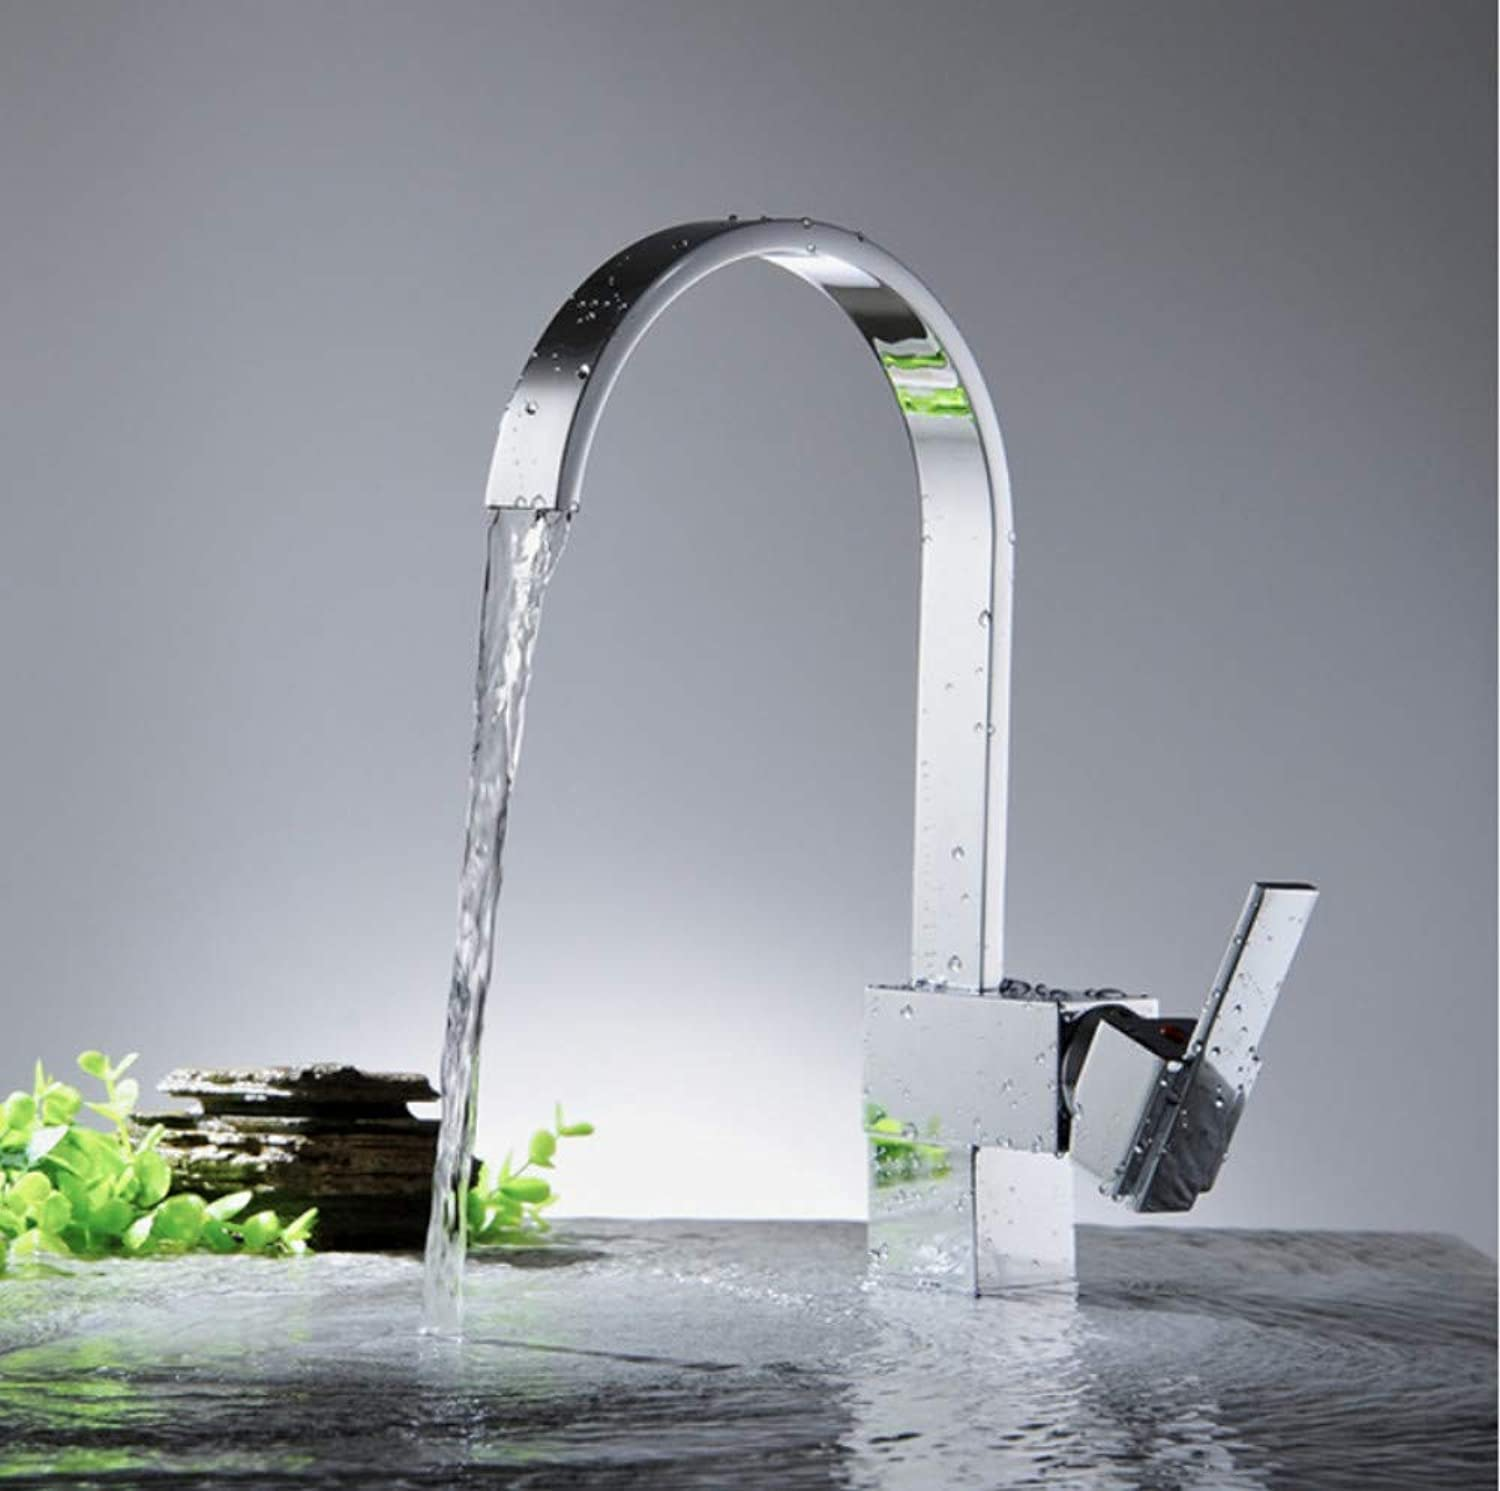 Zlxzlx Faucet Tap Sink Mixer Tap Waterfall Faucet Kitchen Faucets Cold Water and Hot Water